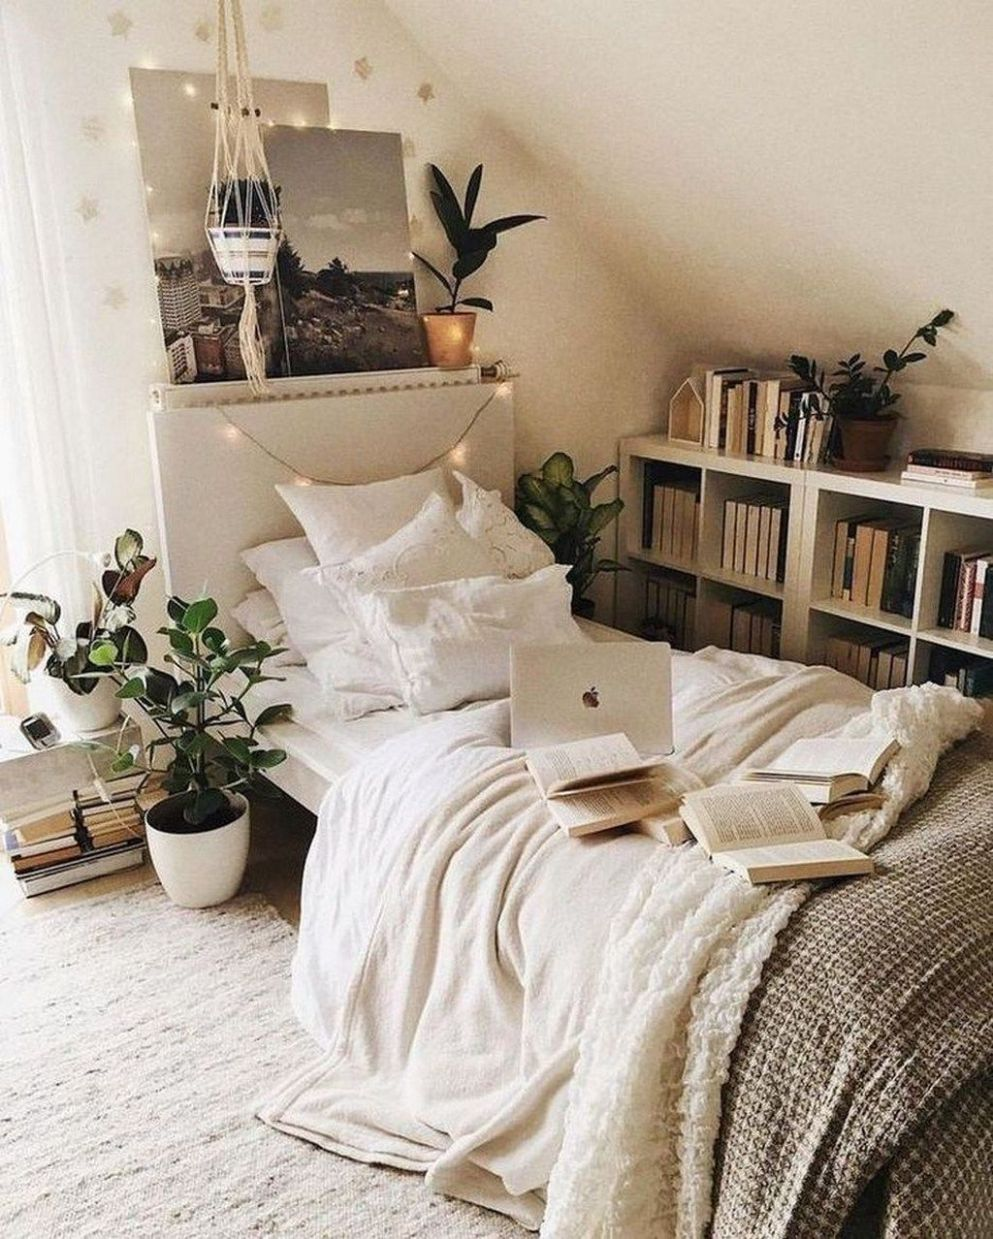 10+ Minimalist Bedroom Decoration Ideas That Looks More Cool (With ..